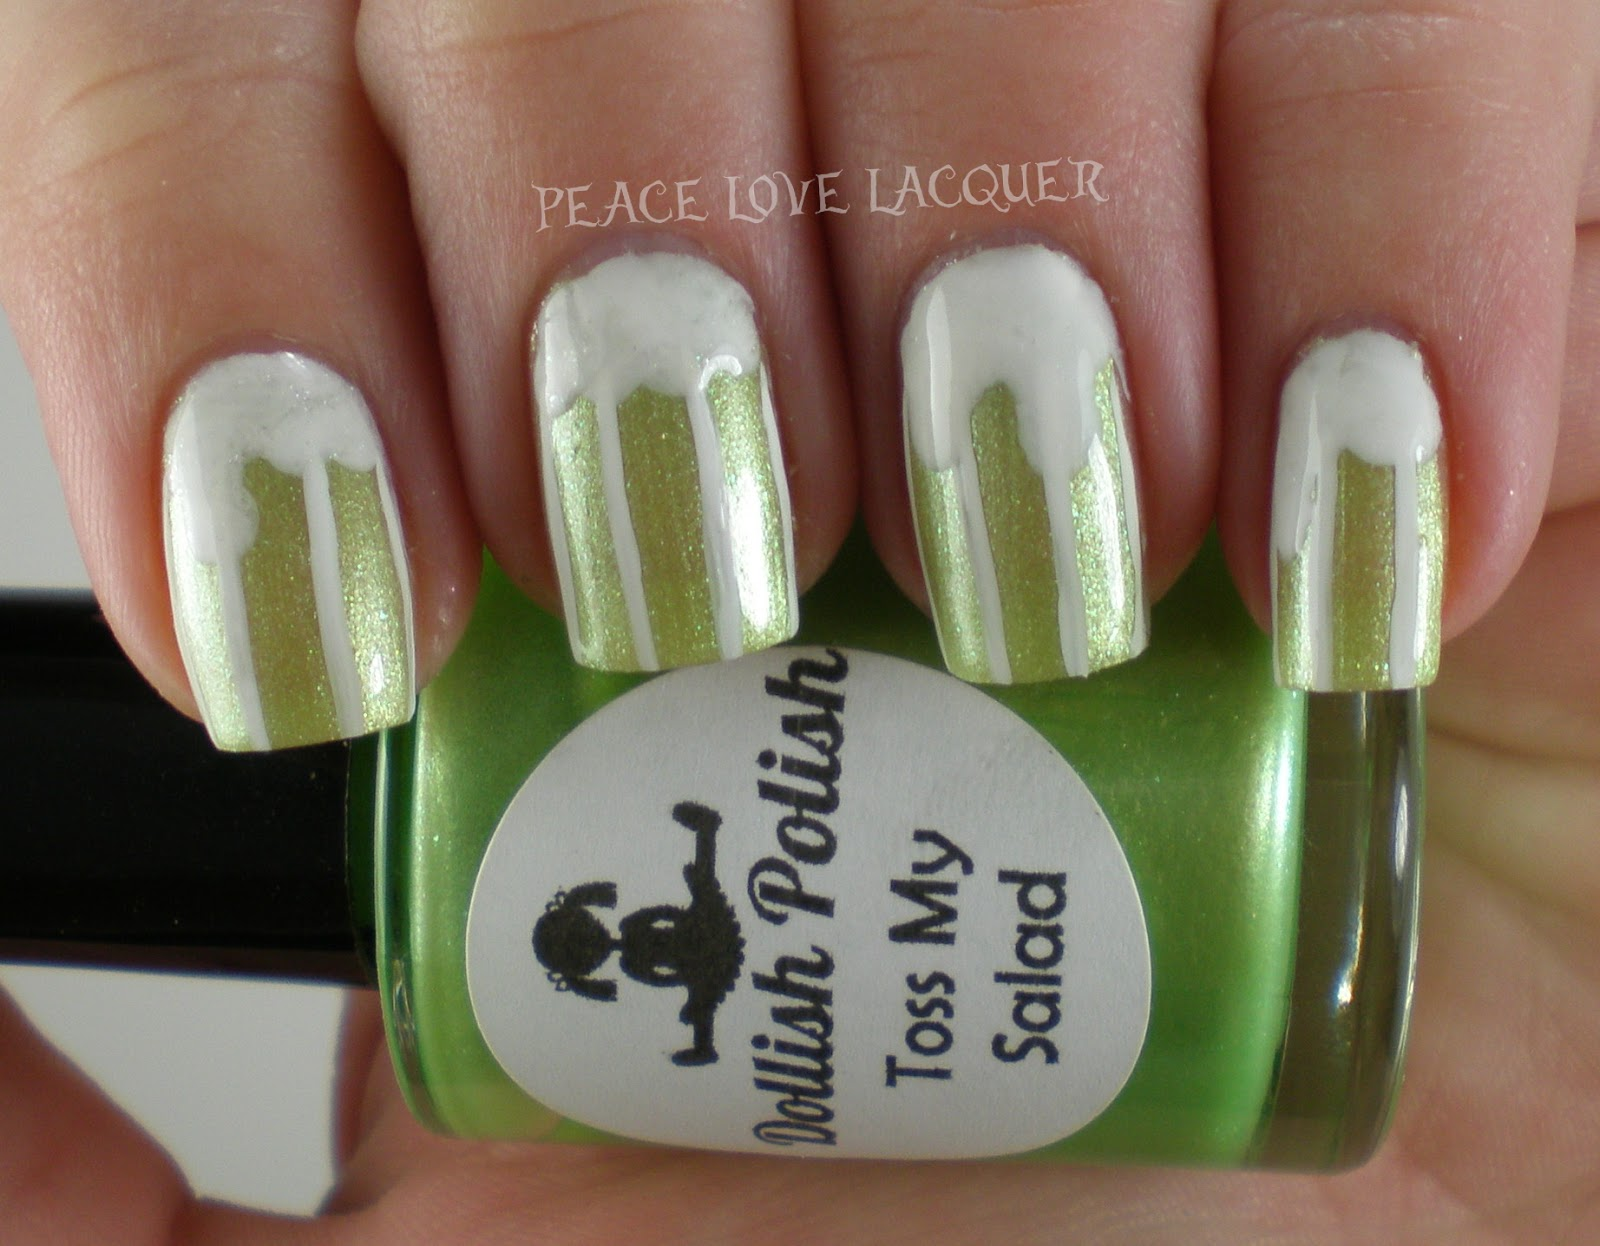 Peace Love Lacquer: Luck of the Irish Nail Art Challenge Day 1 - Green